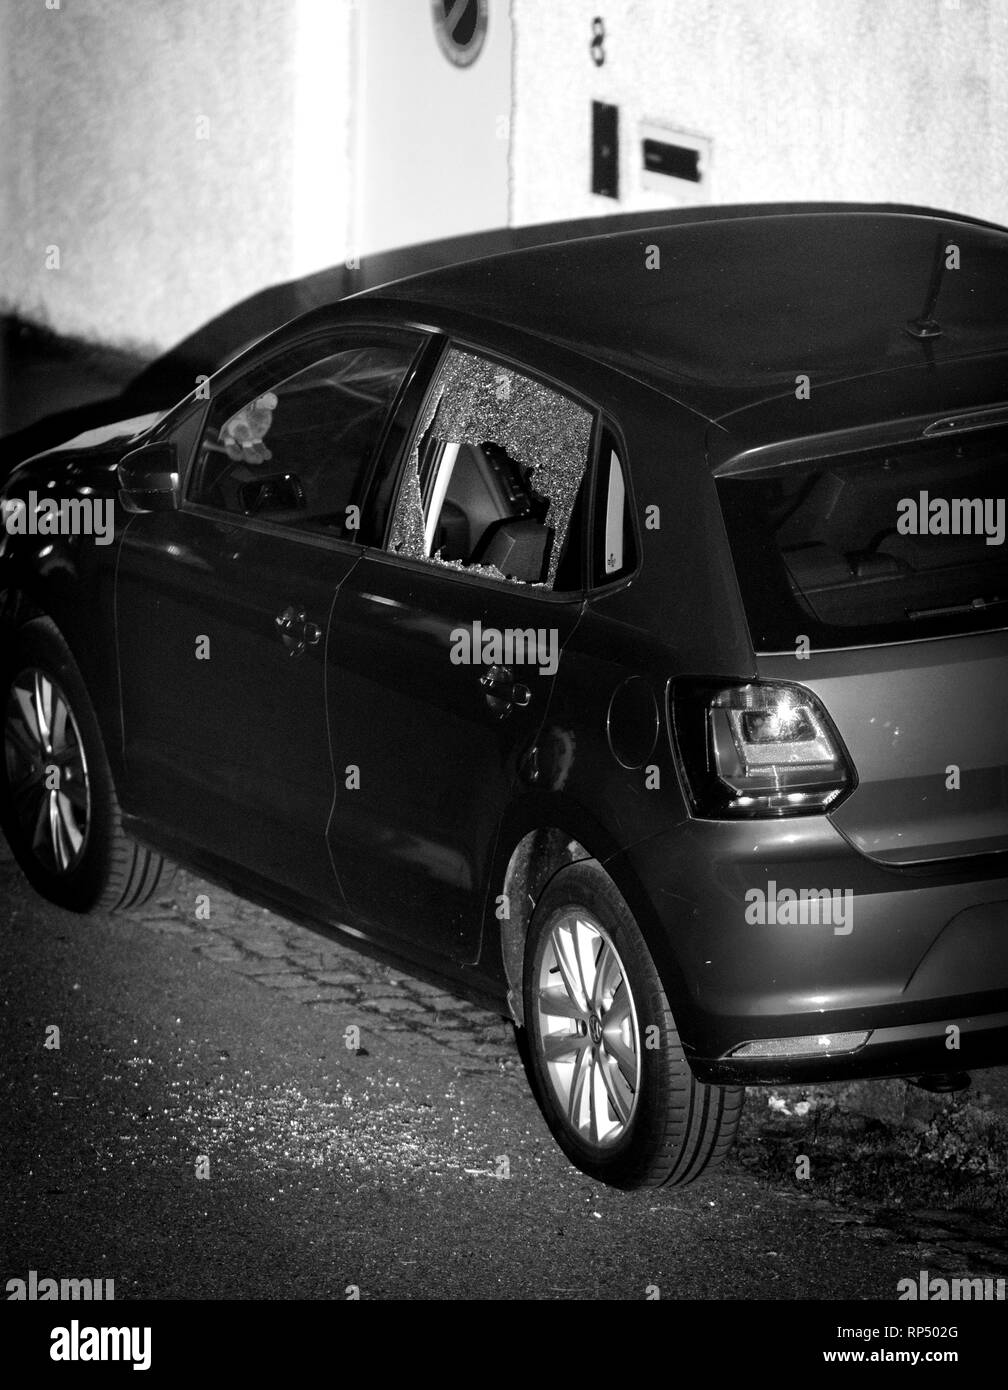 PARIS, FRANCE SEP 26, 2018: Detail of night scene of elevated view of a new red car with the broken glass window shattered glass on asphalt - robbery, break-in, burglary, embezzlement felony in calm neighborhood - black and white - Stock Image